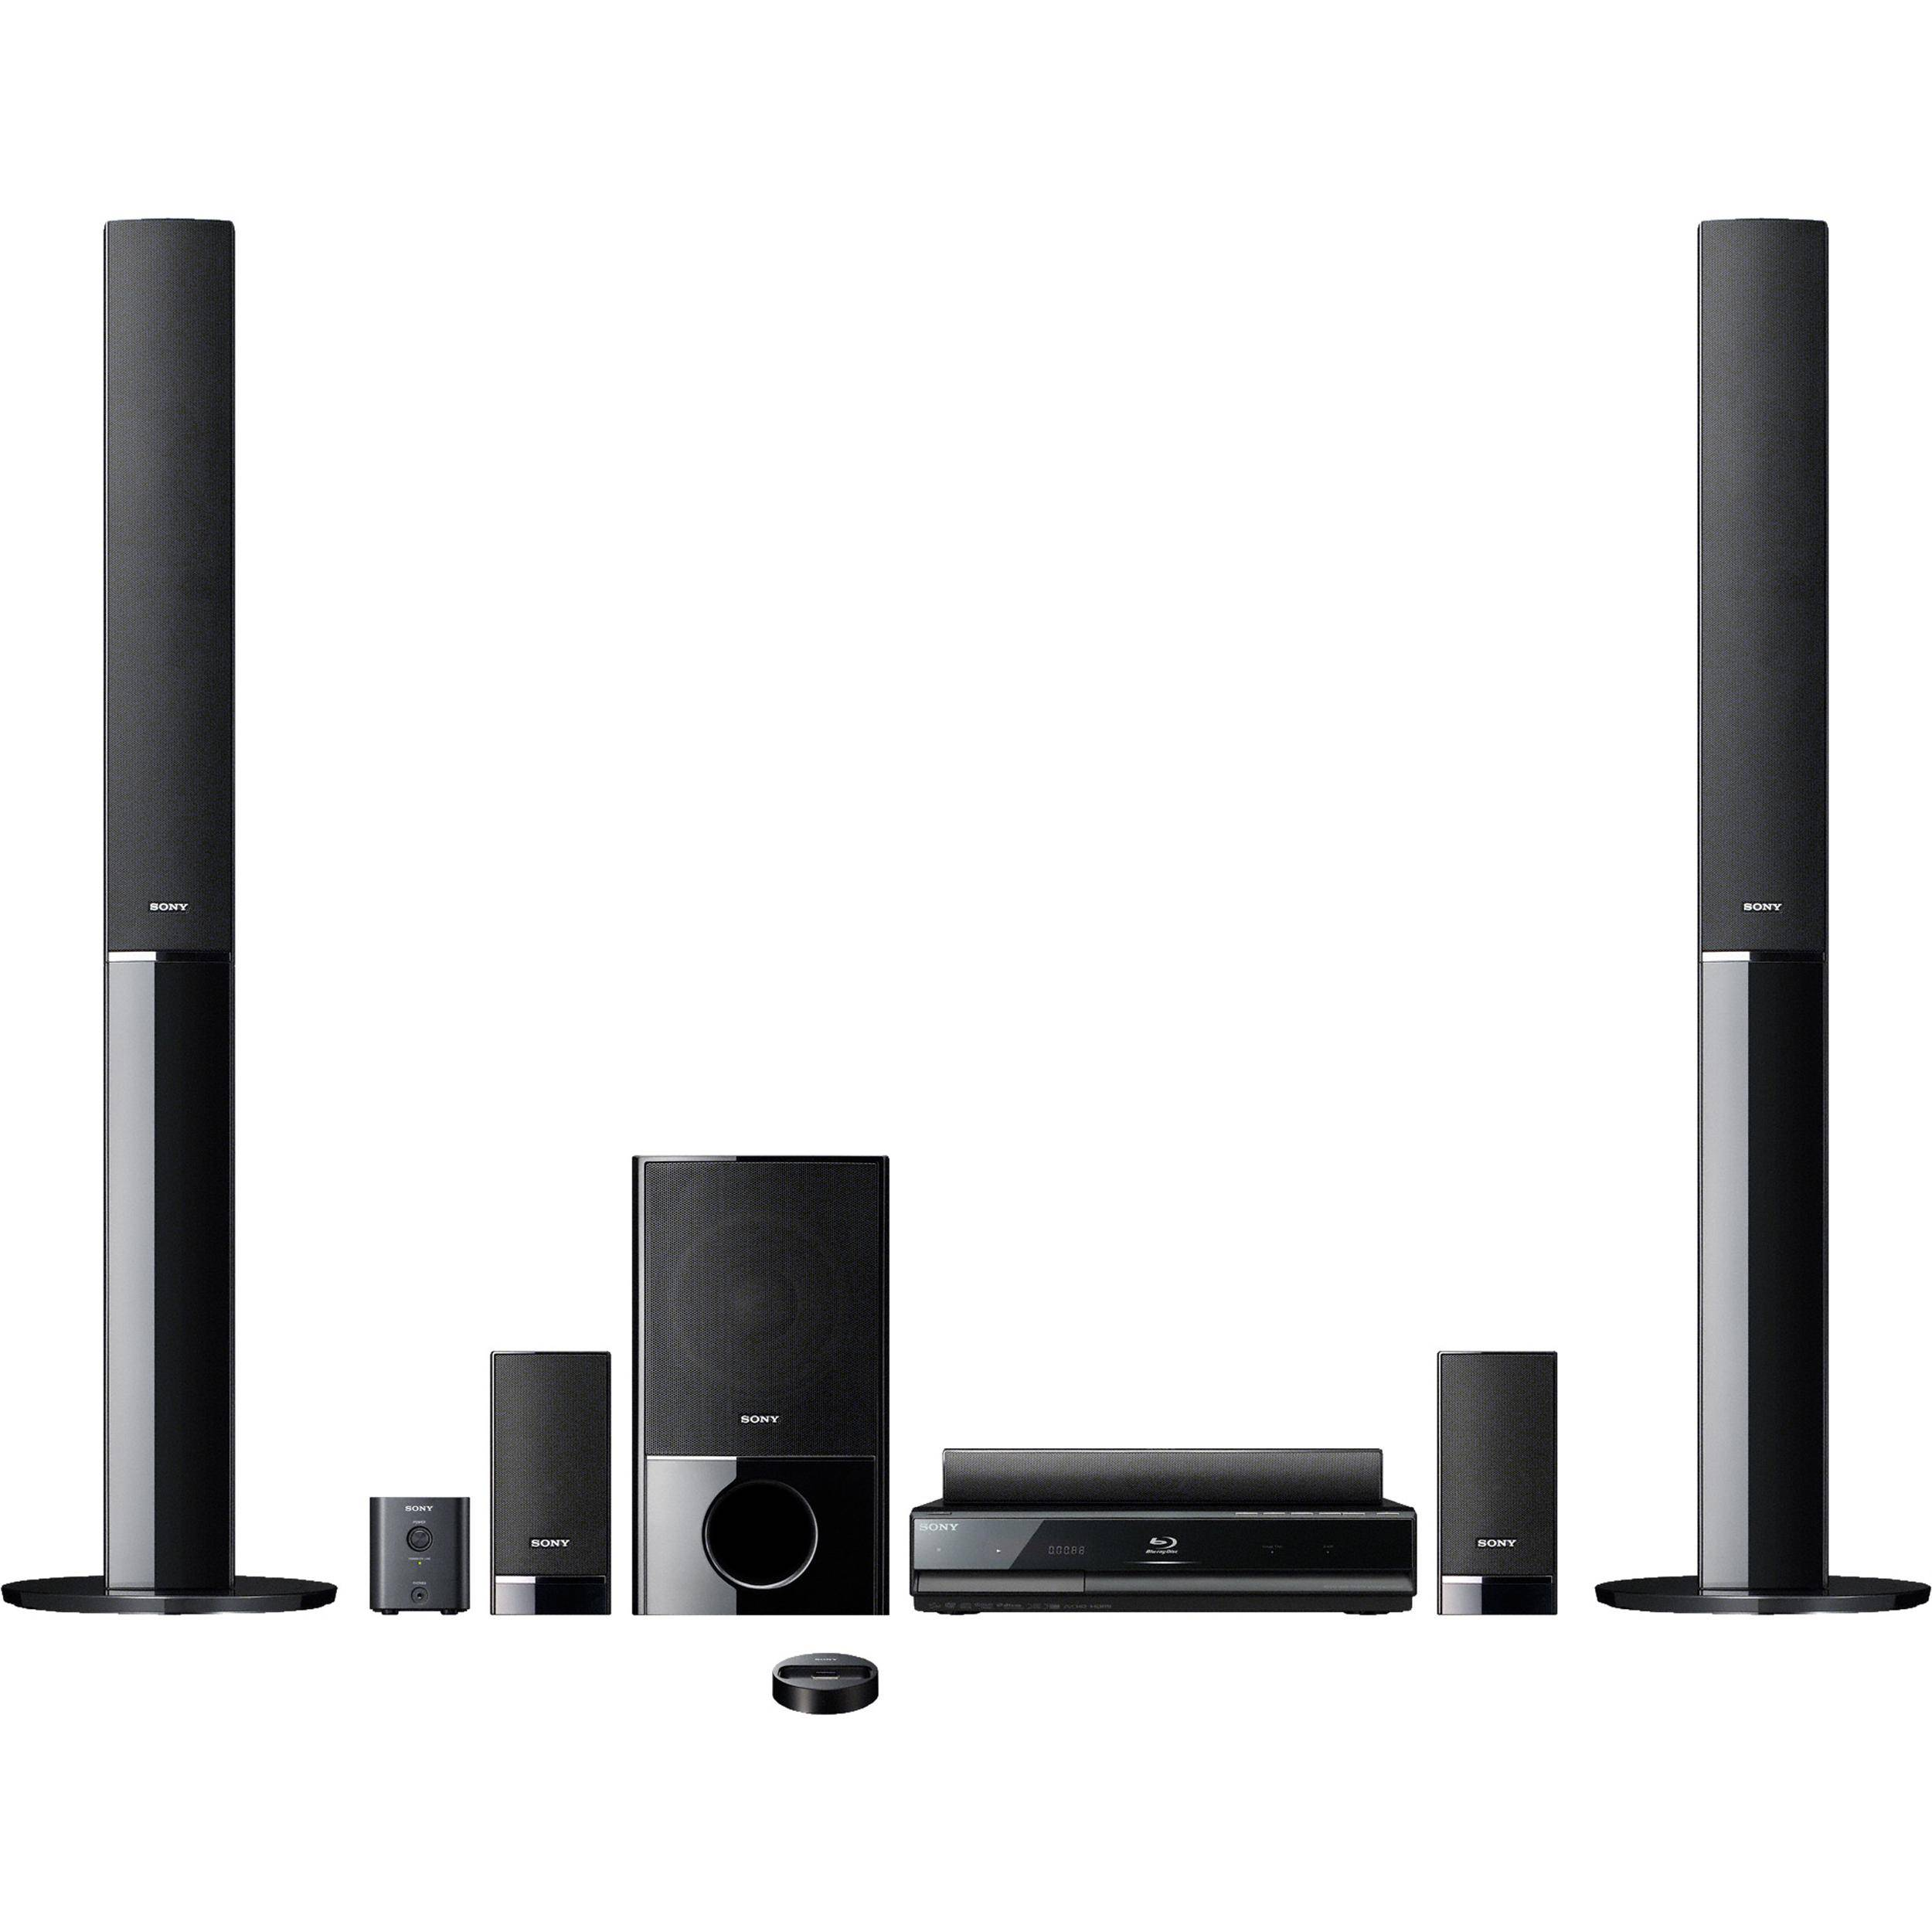 sony bdv e500w blu ray home theater system bdve500w b h photo. Black Bedroom Furniture Sets. Home Design Ideas